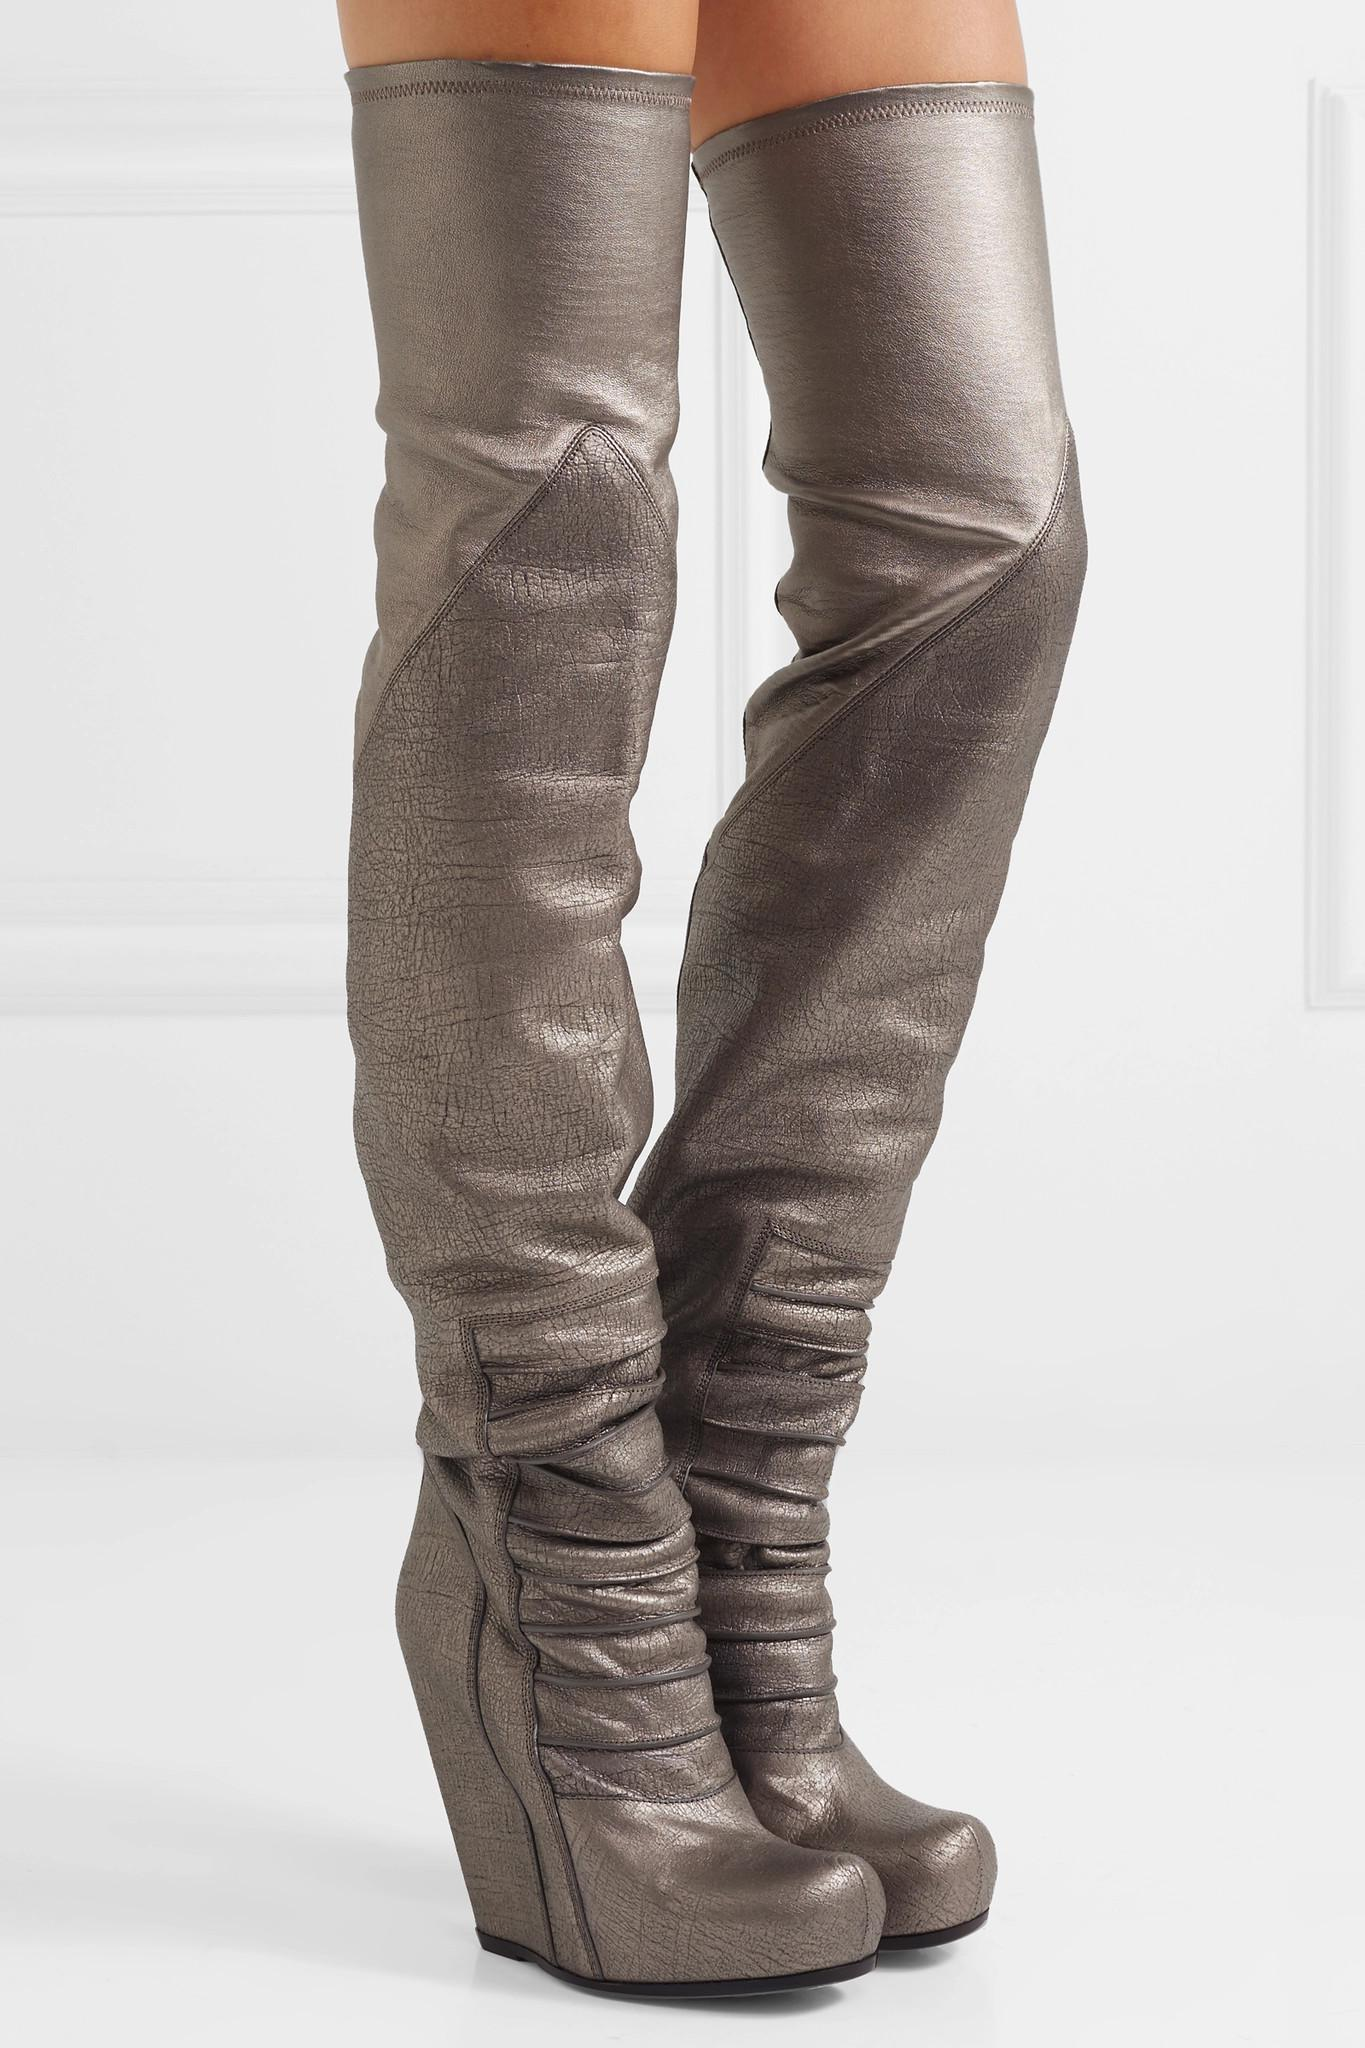 bd0edeacbc26 Rick Owens - Metallic Textured-leather Over-the-knee Wedge Boots - Lyst.  View fullscreen